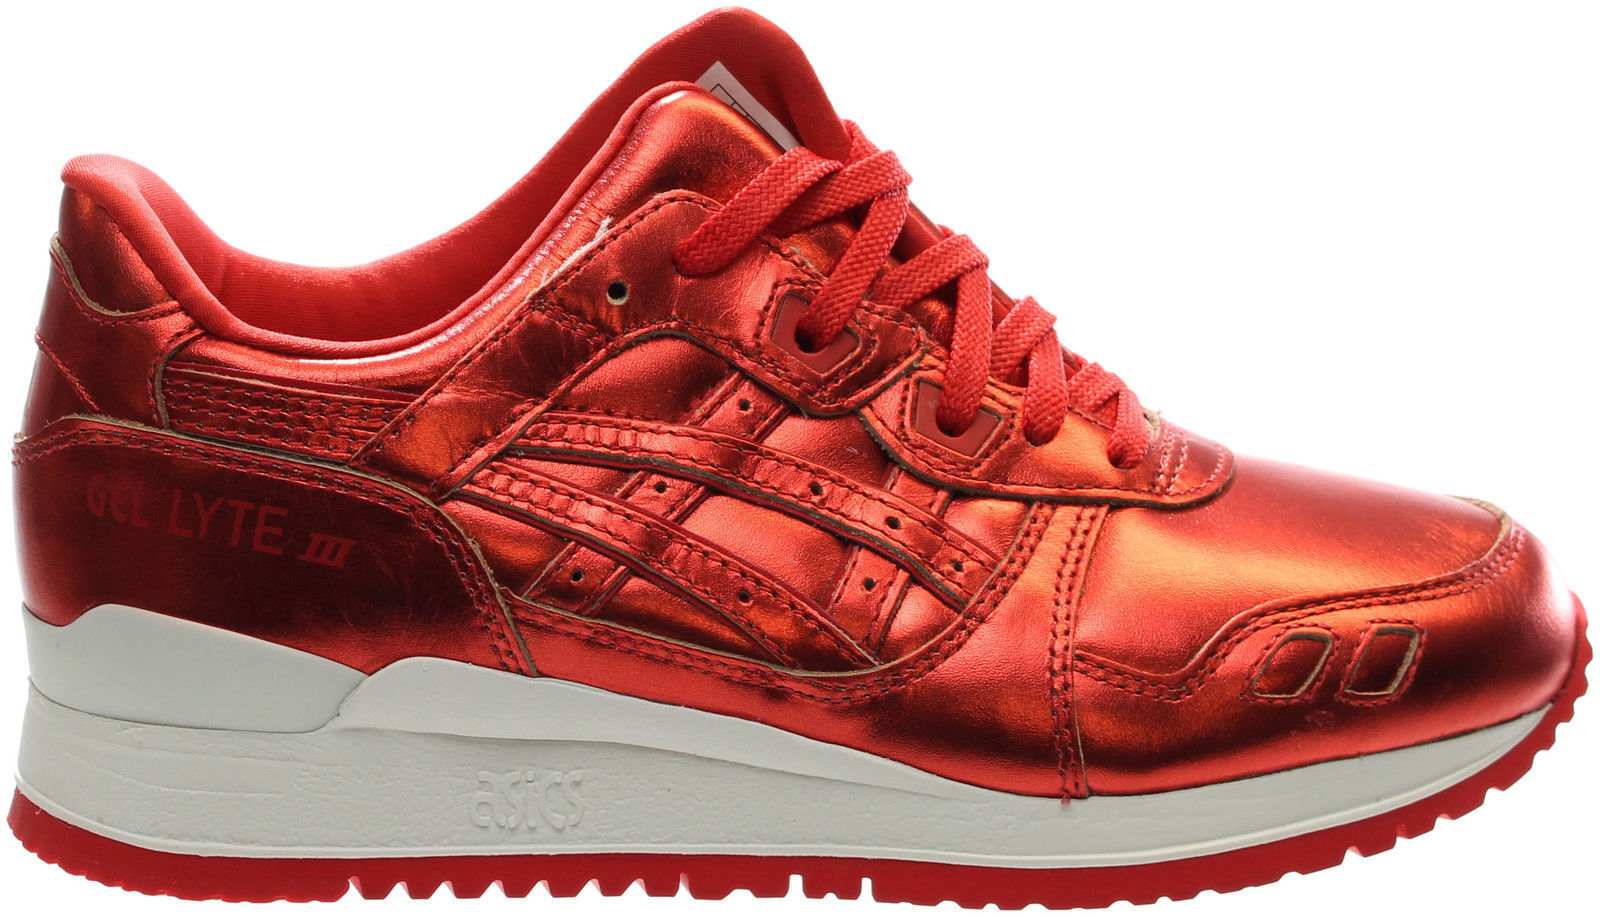 New ASICS Tiger Wmn Sz 8.5 GEL-Lyte III Shoes H6E5K Red Patent Leather Running best-selling model of the brand